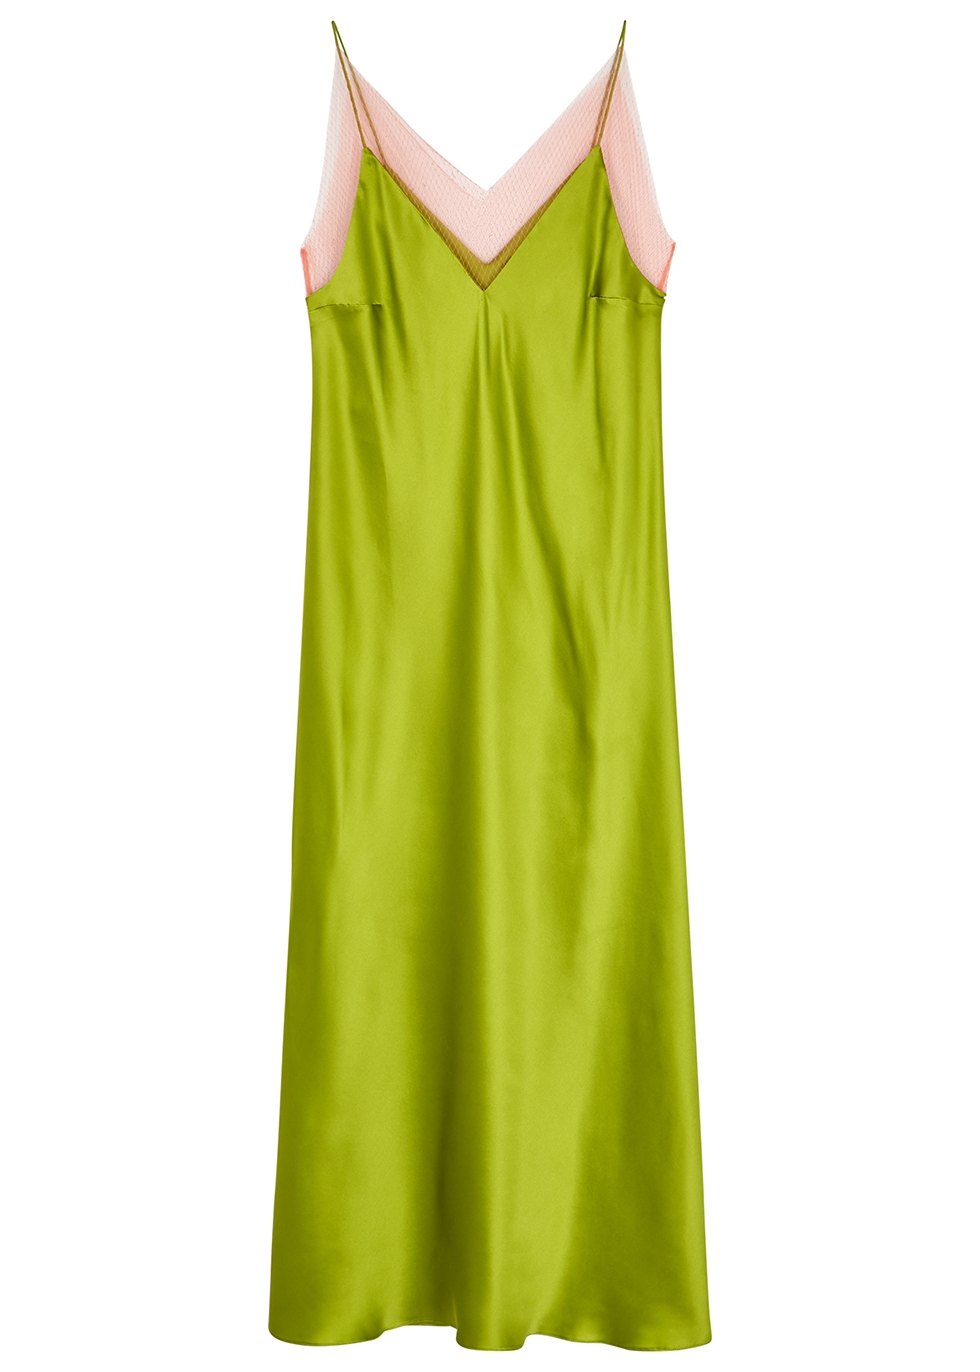 Lime lace-trimmed silk midi dress - Walk of Shame